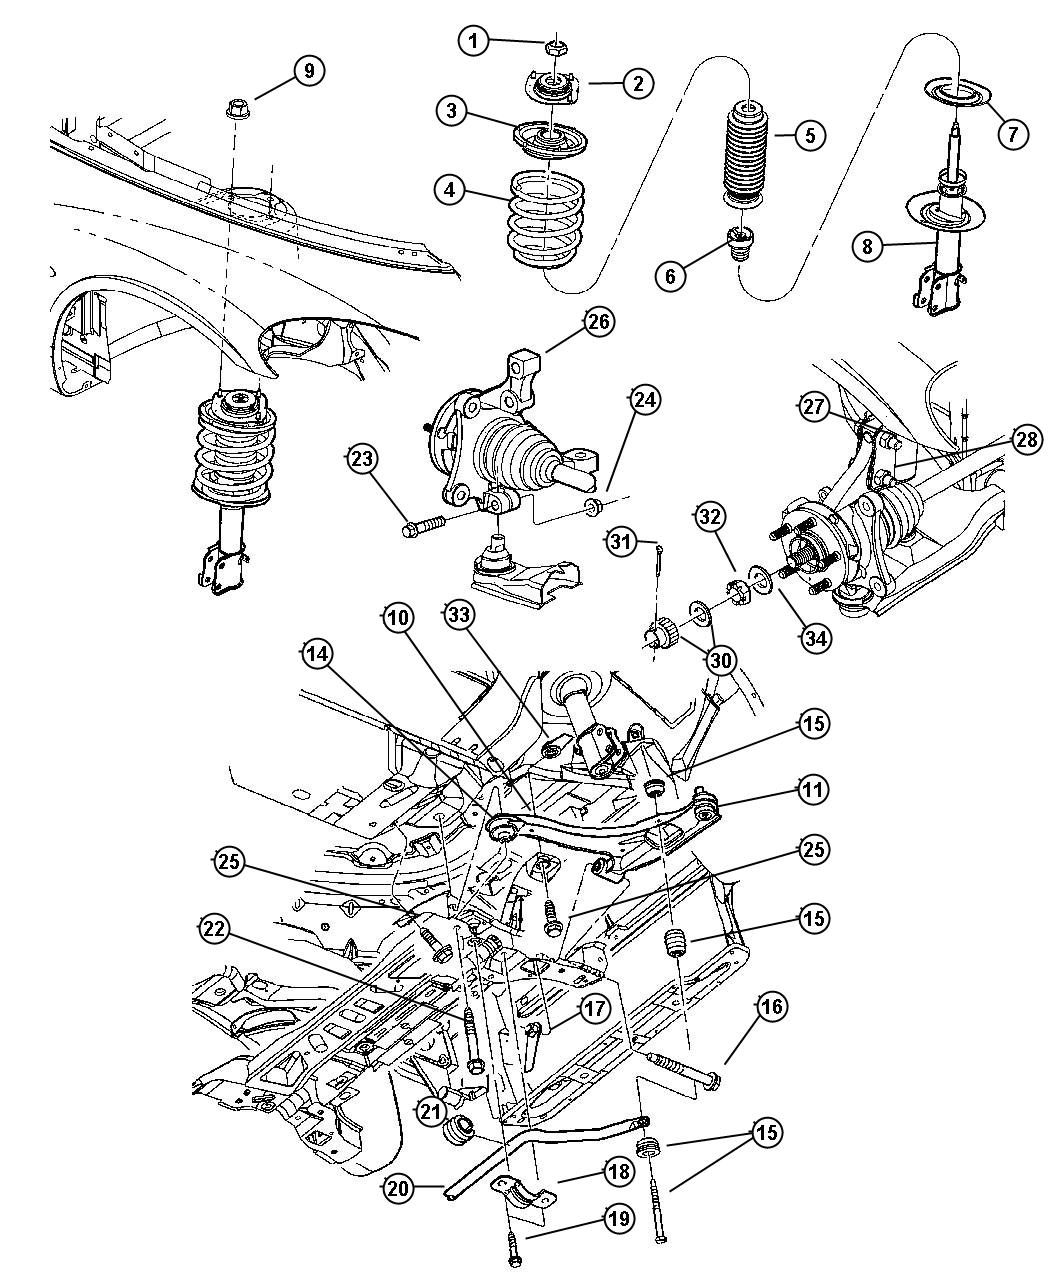 2002 Pt Cruiser Parts Diagram